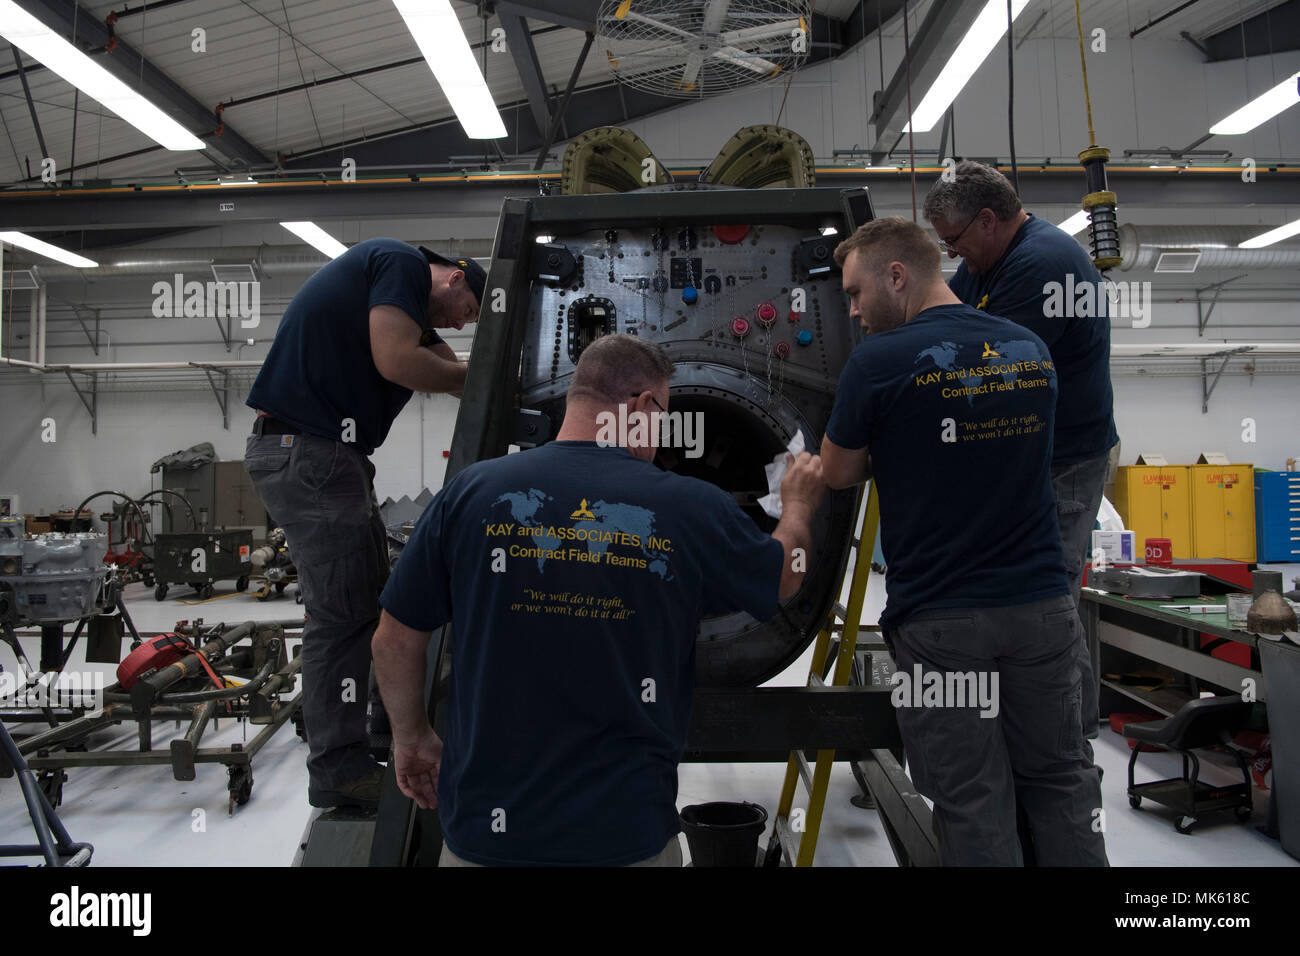 Wiring Harness Stock Photos Images Alamy Car Fabrication James Duty An Airplane Mechanic Contracted Through Kay And Associates Inc Clips A